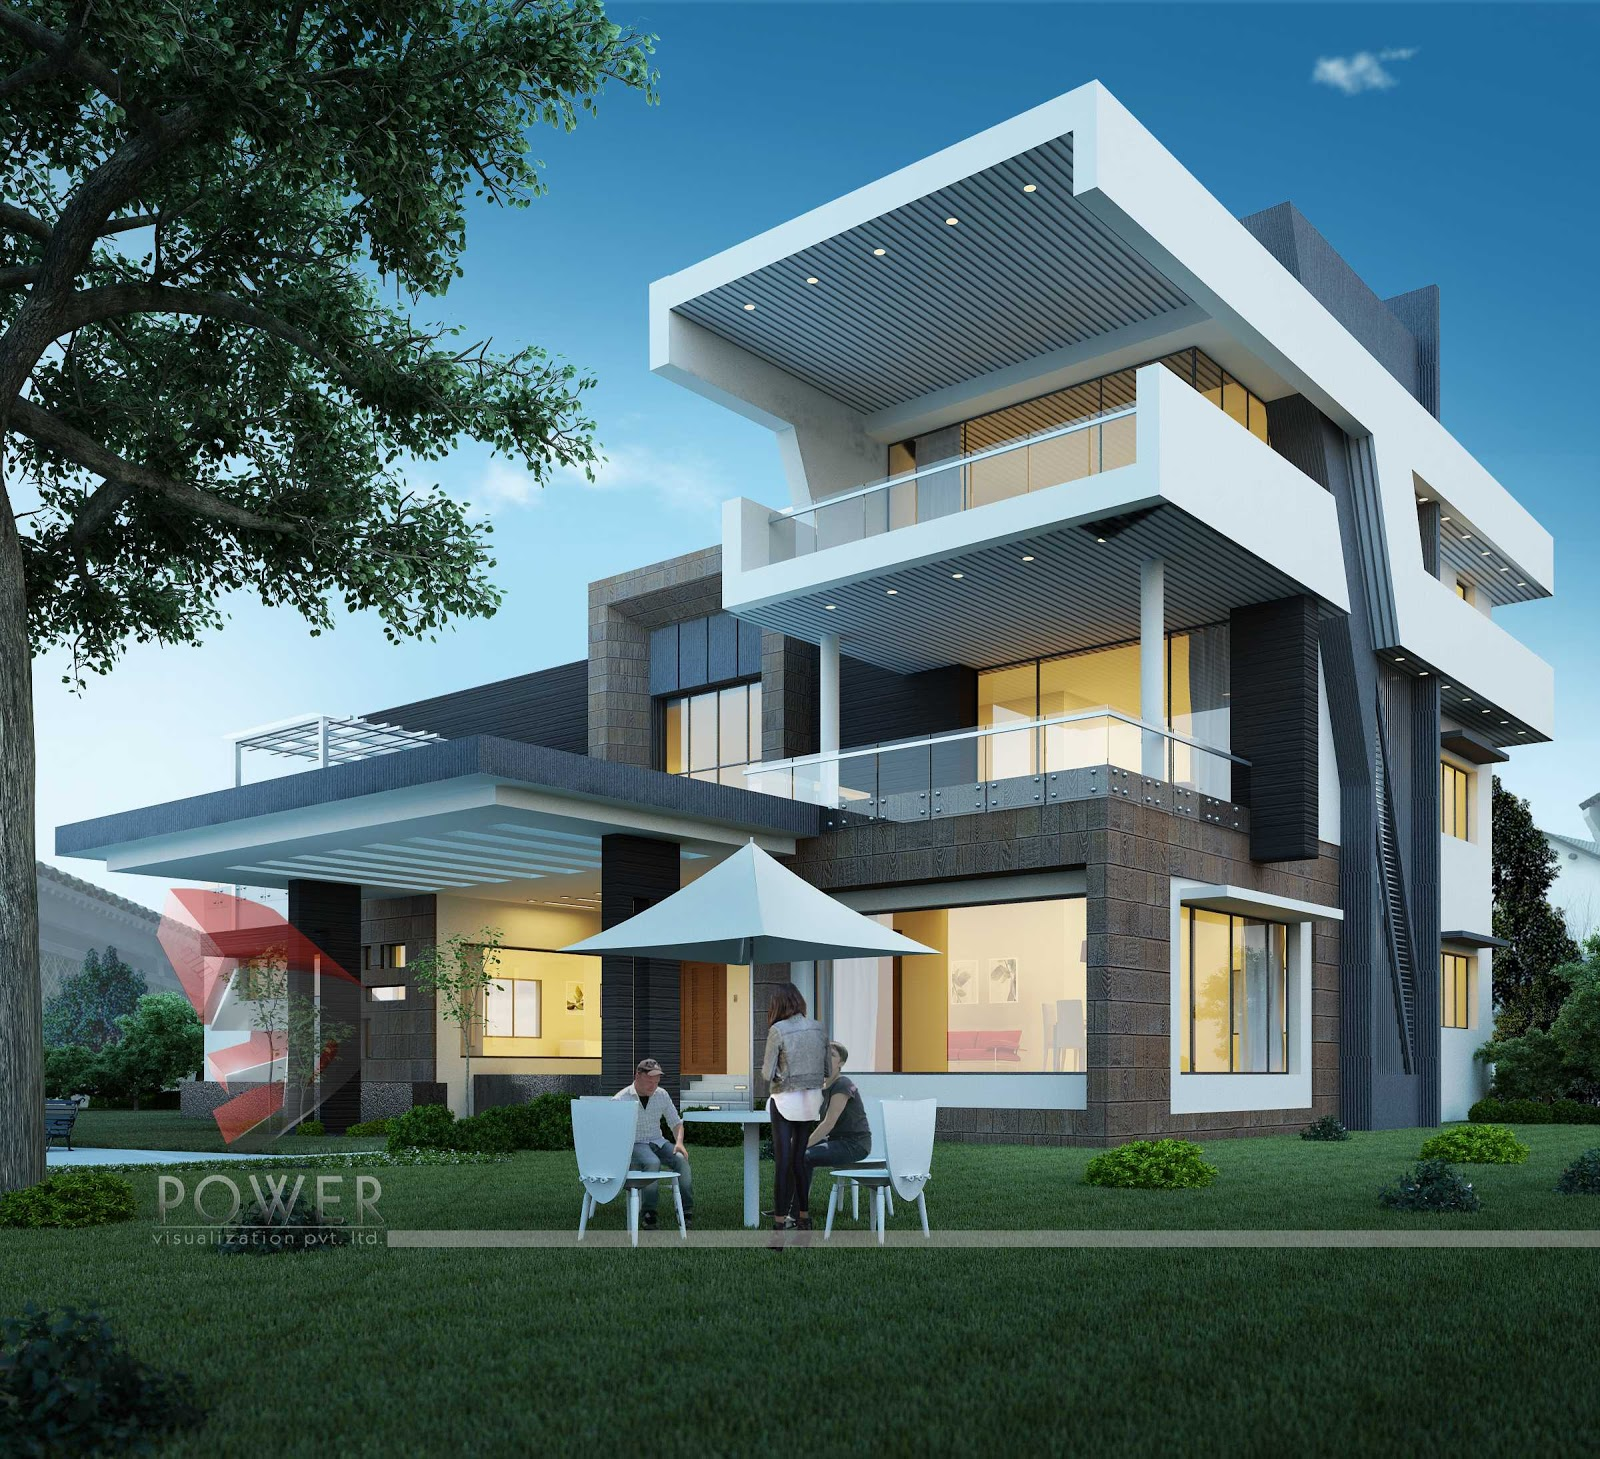 Ultra modern home designs home designs october 2012 for Ultra modern houses for sale